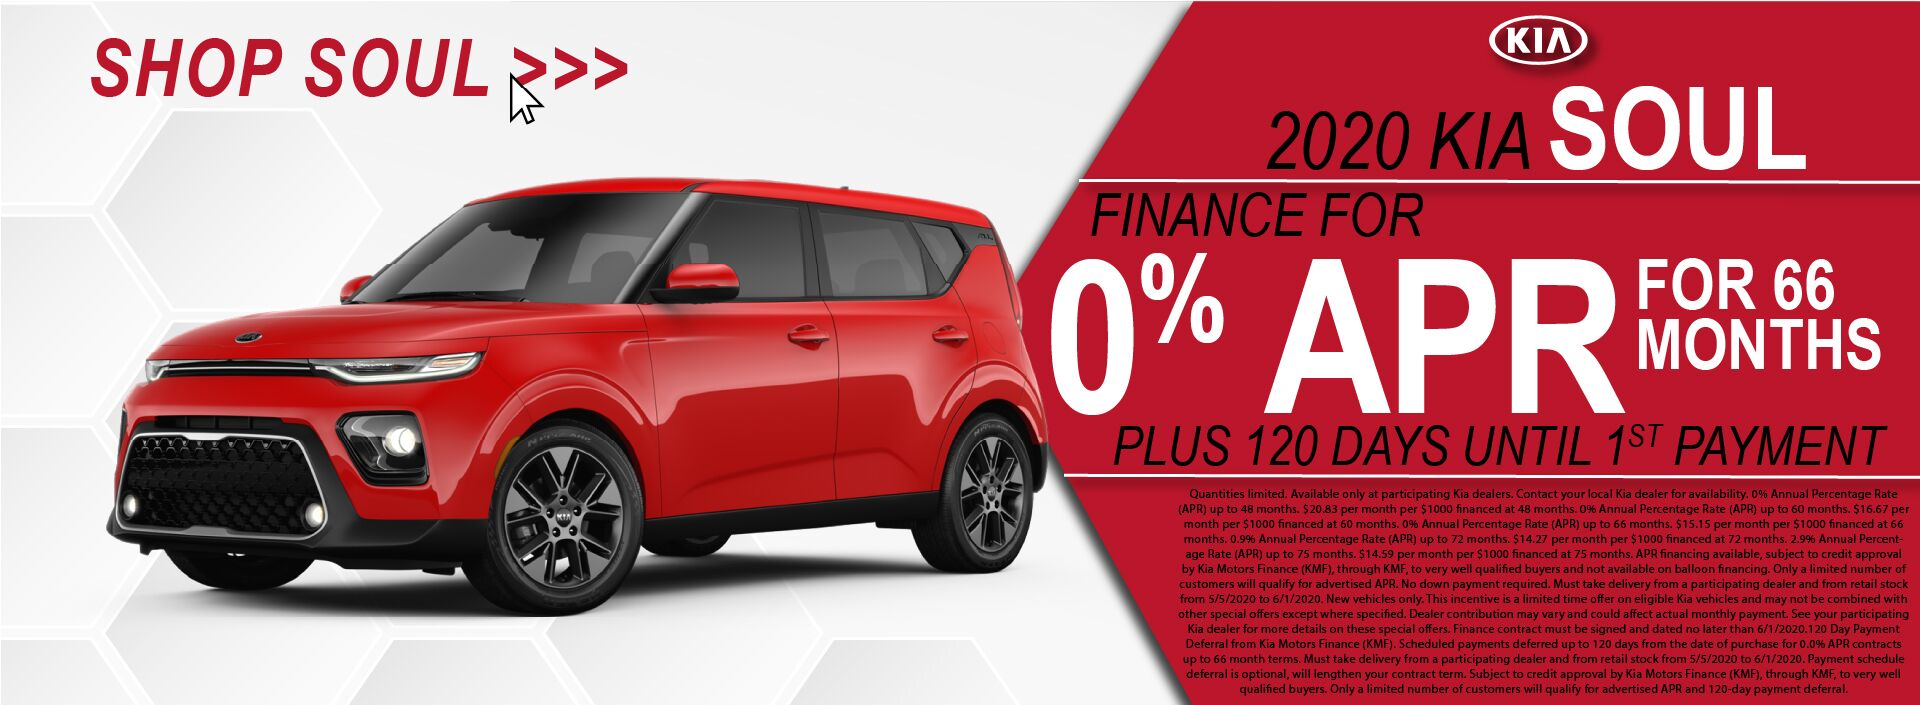 Bill Bryan Kia Soul 0% APR